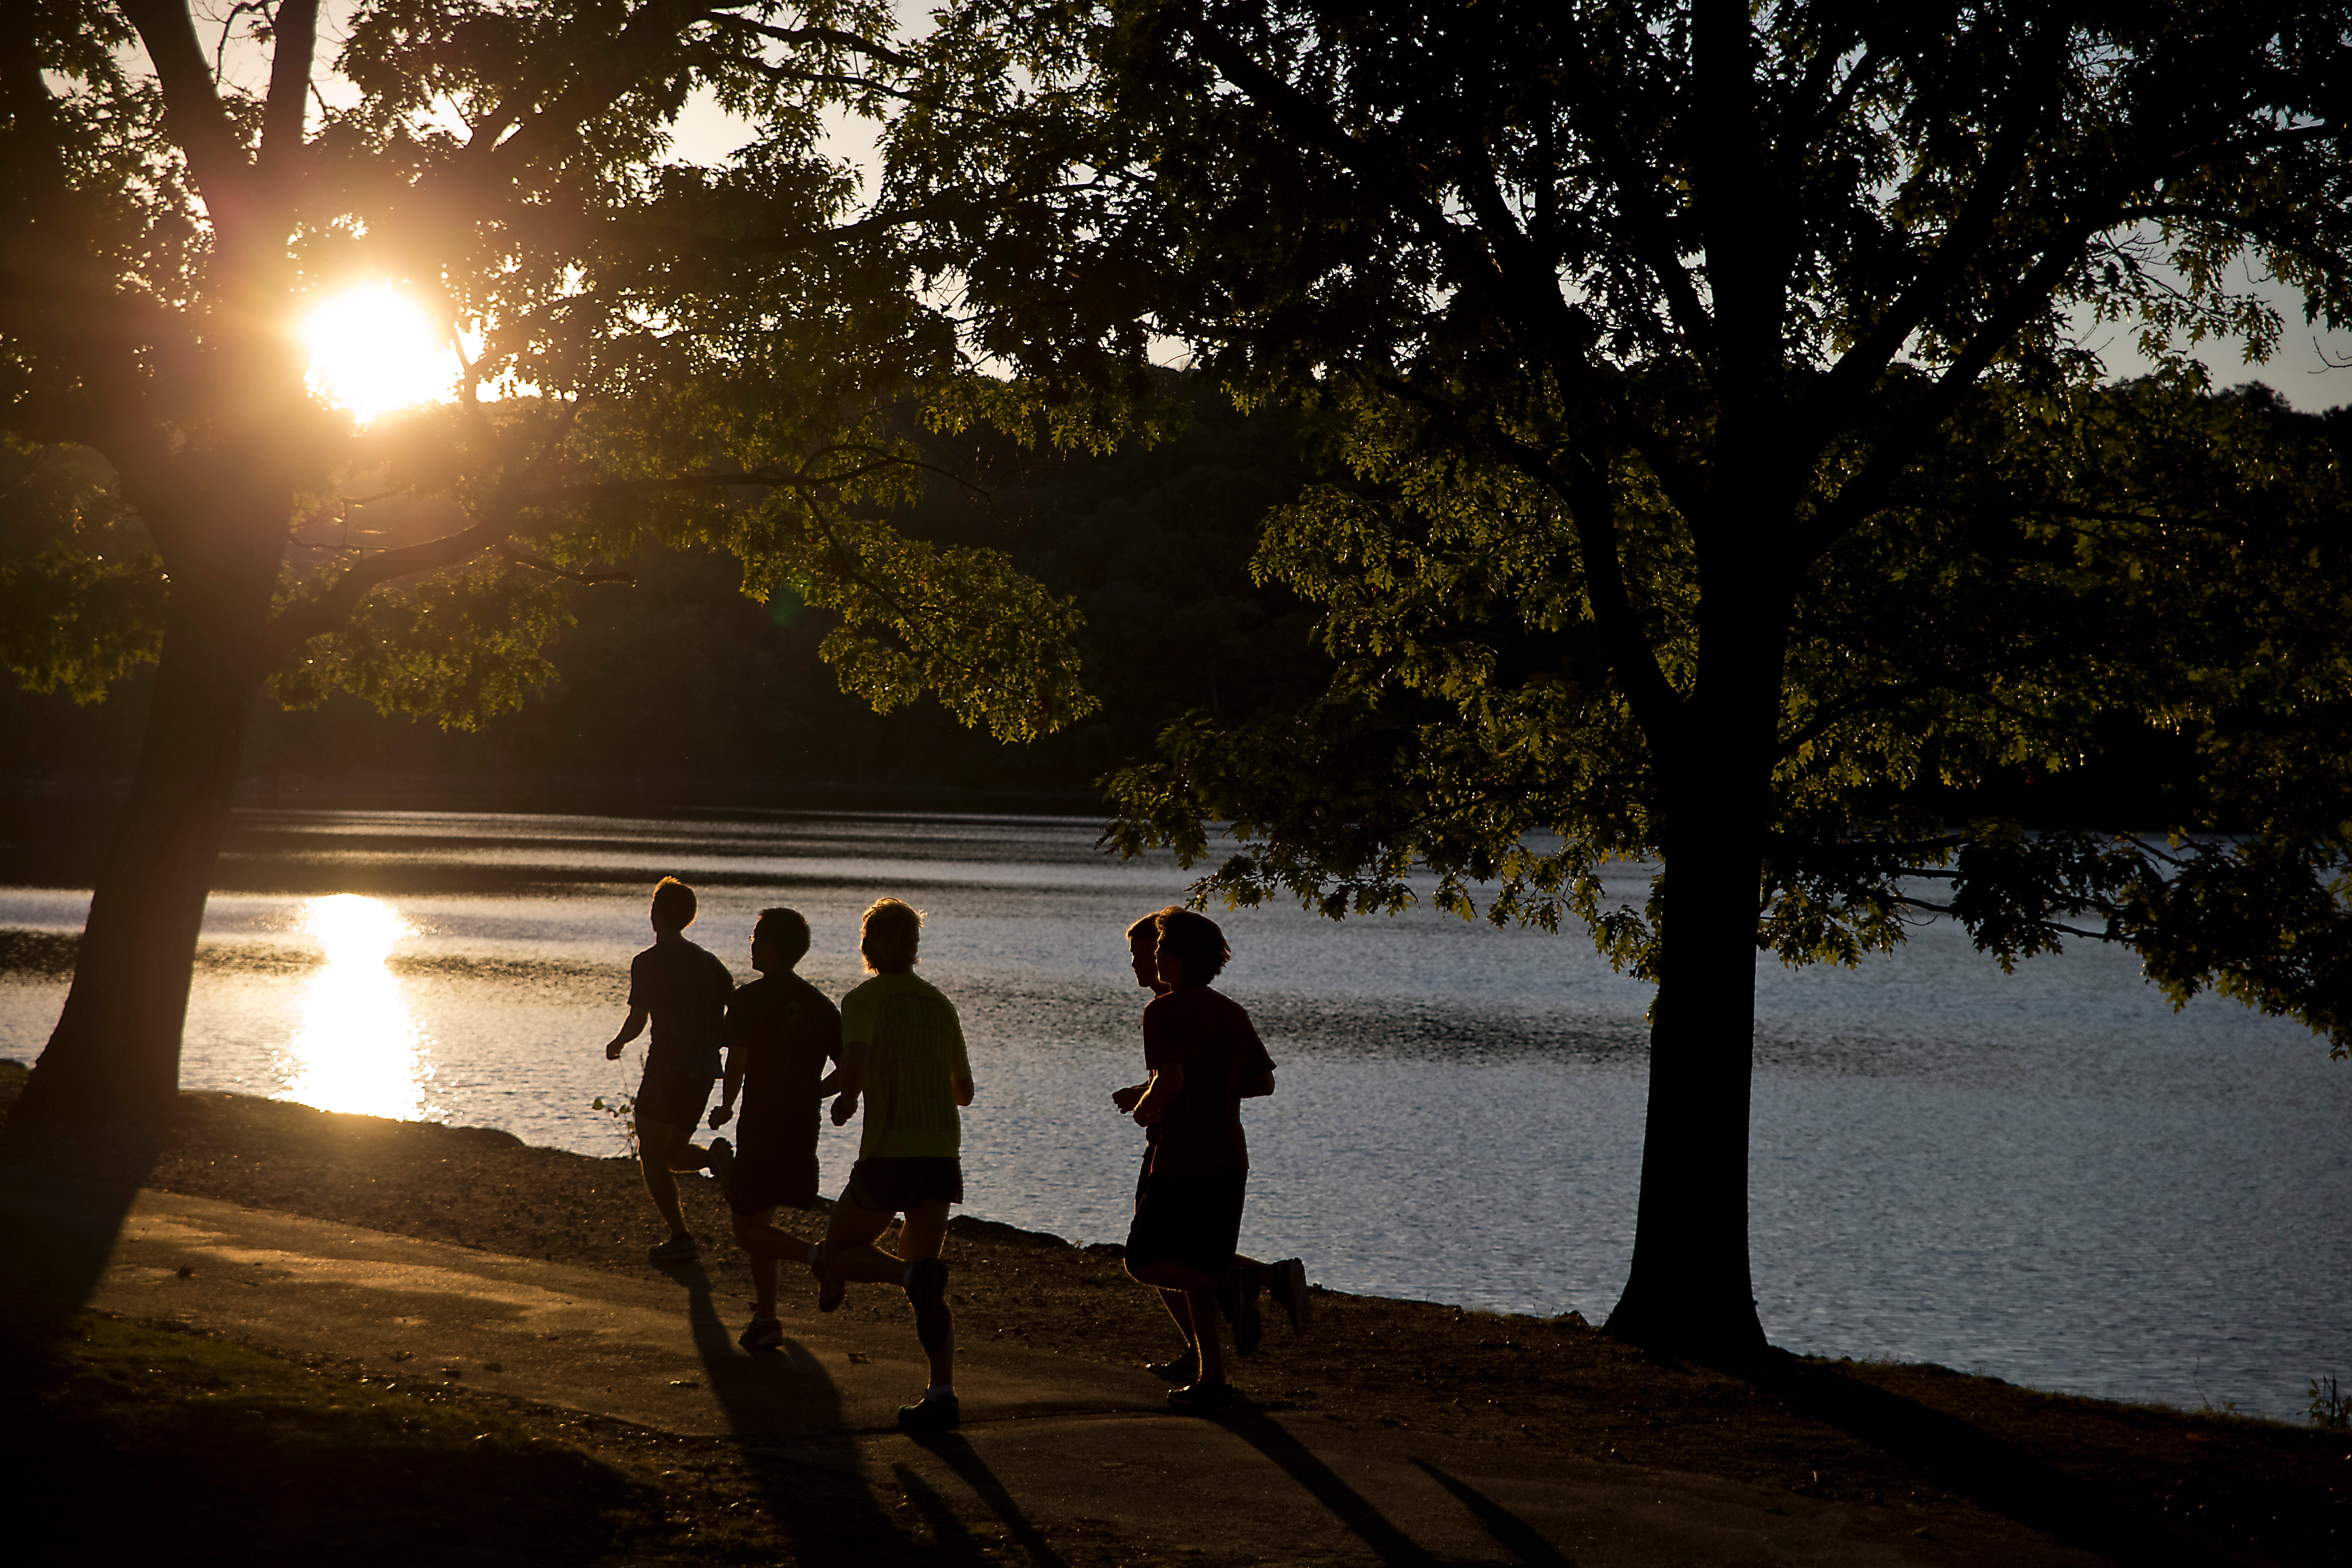 Runners at Jamaica Pond